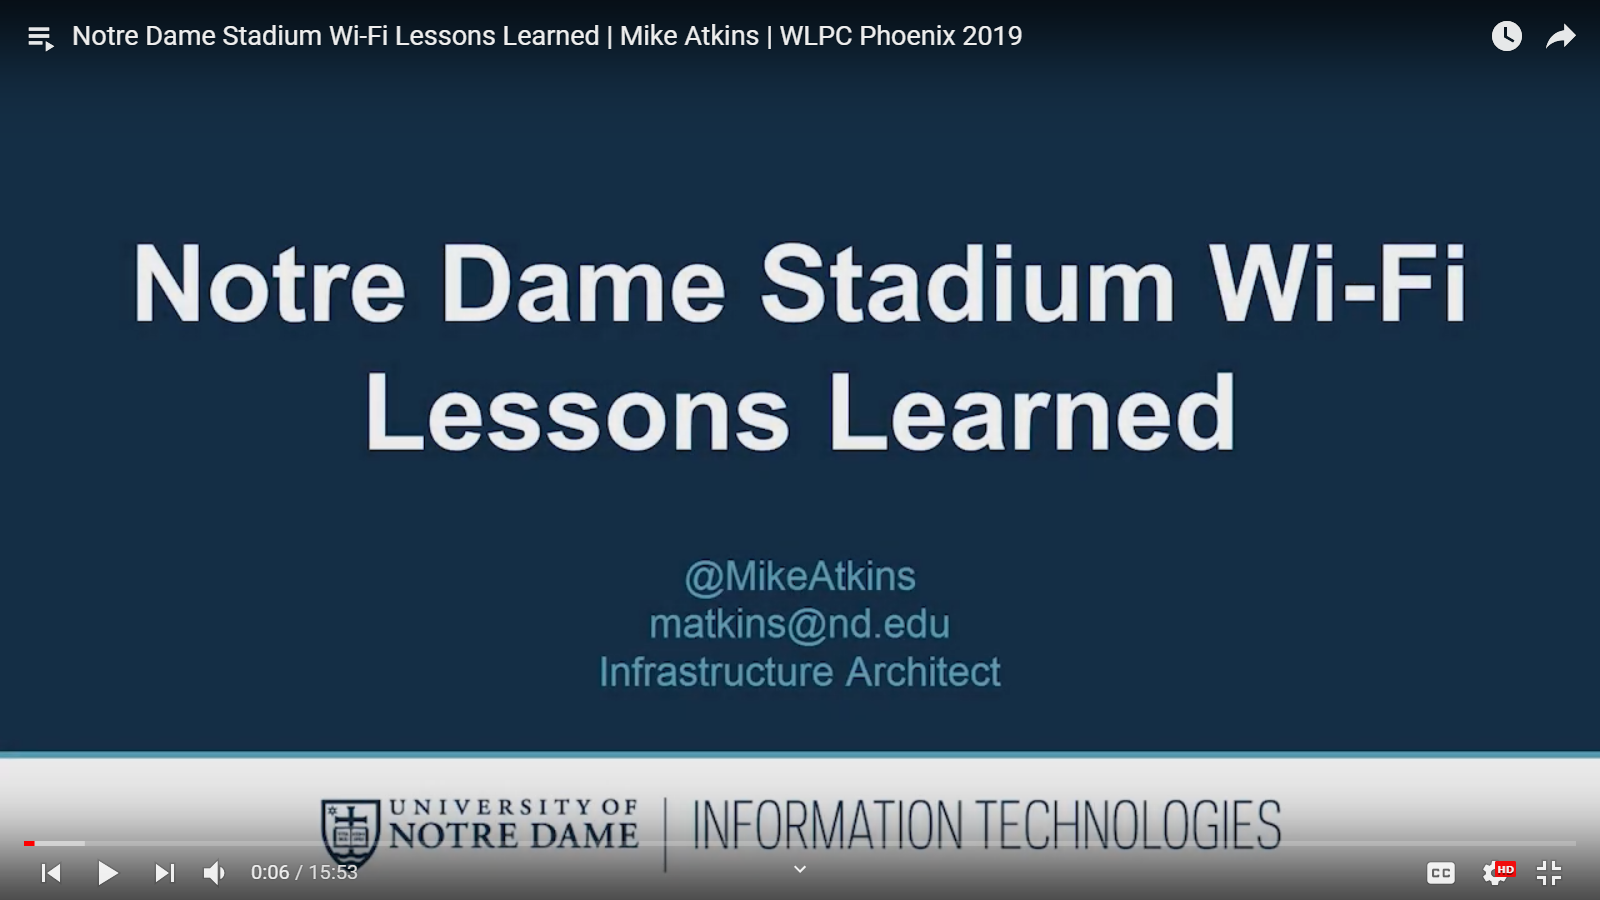 Notre Dame Stadium Wi-Fi Lessons Learned   Mike Atkins   WLPC Phoenix 2019